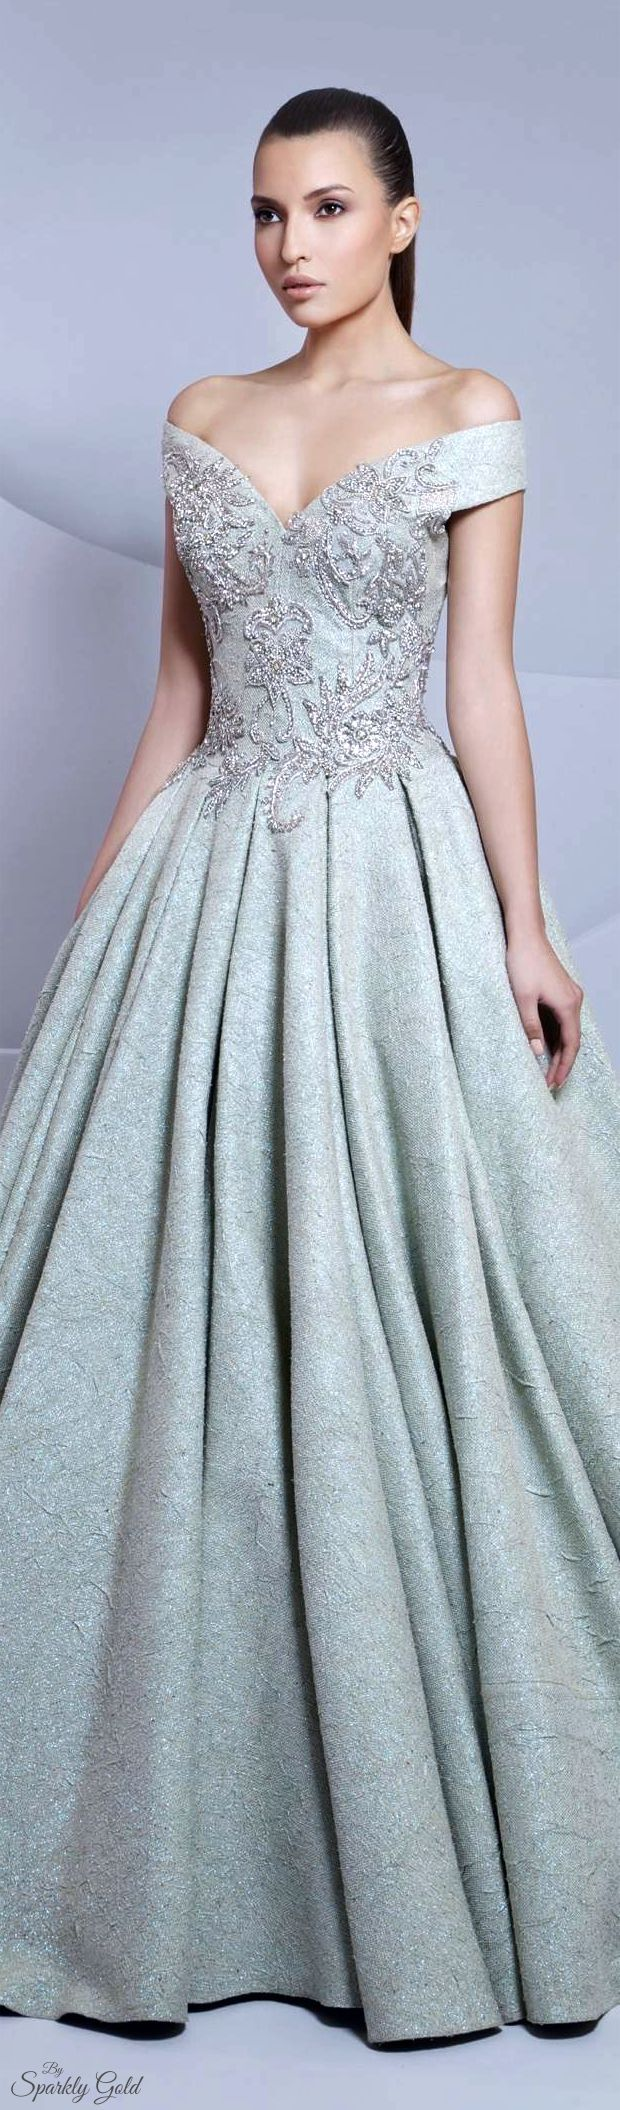 51 best Vestidos noche images on Pinterest | Long prom dresses ...